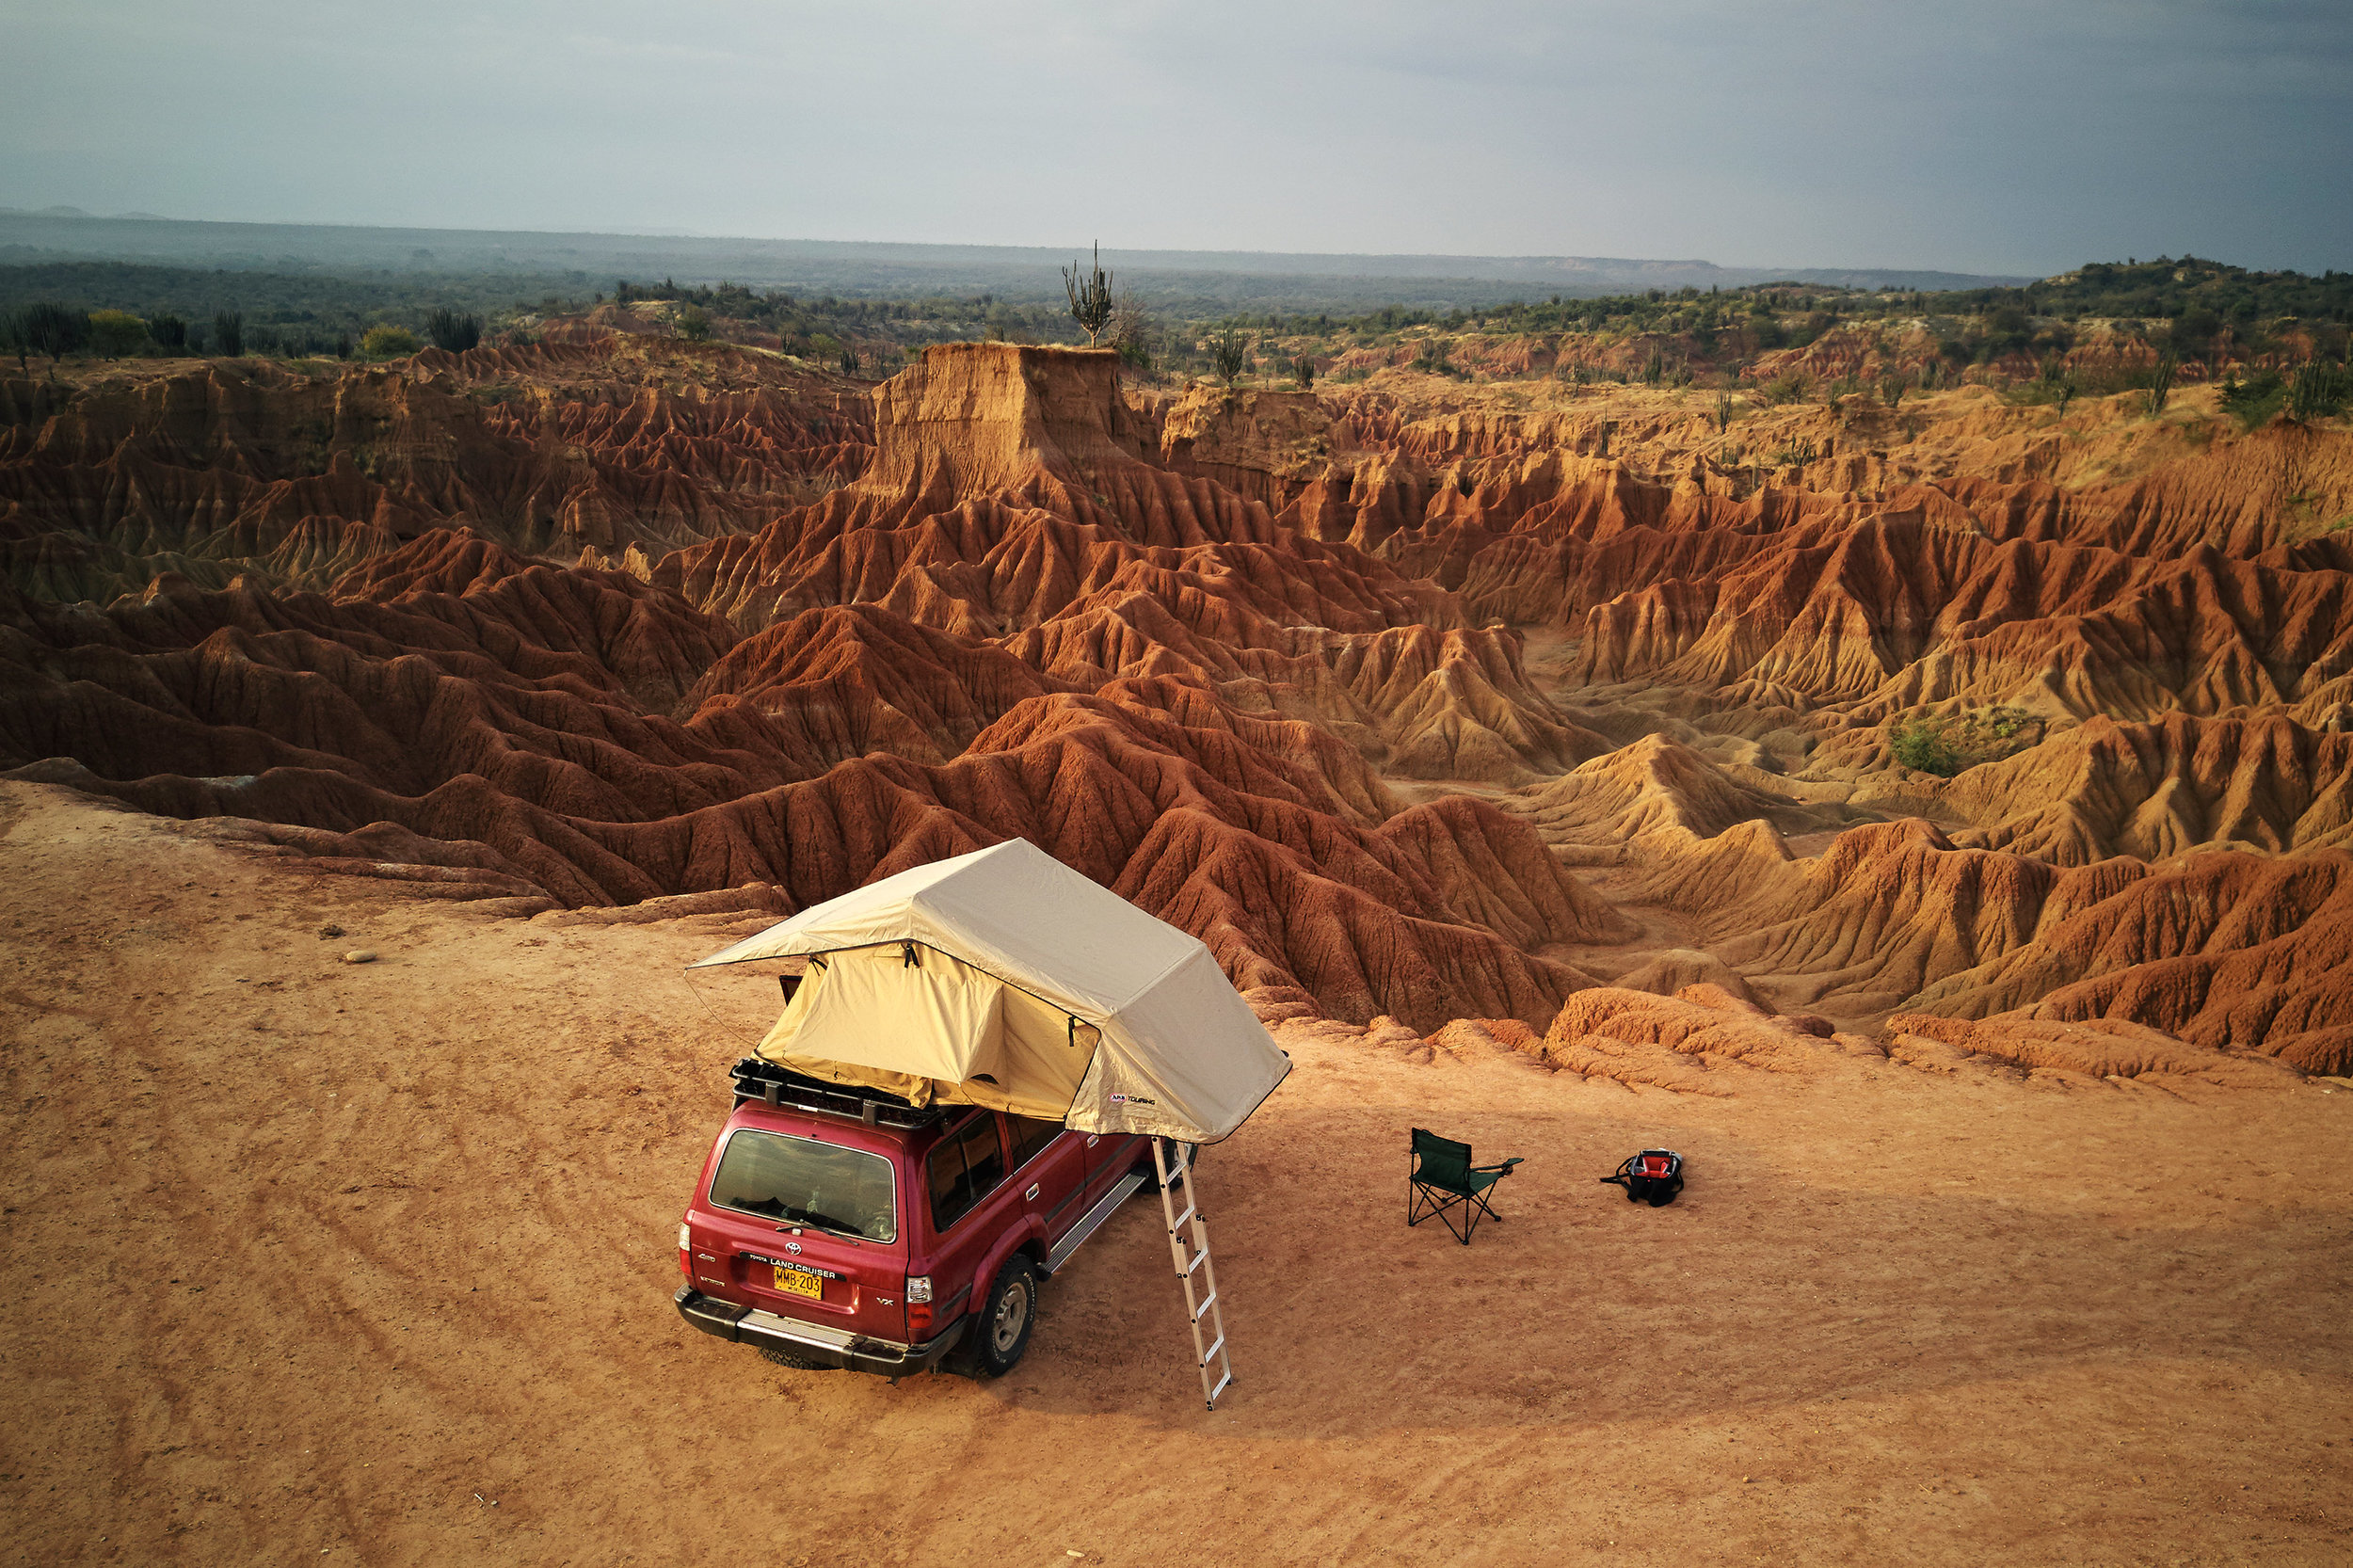 Car with rooftop tent in Tatacoa desert Colombia